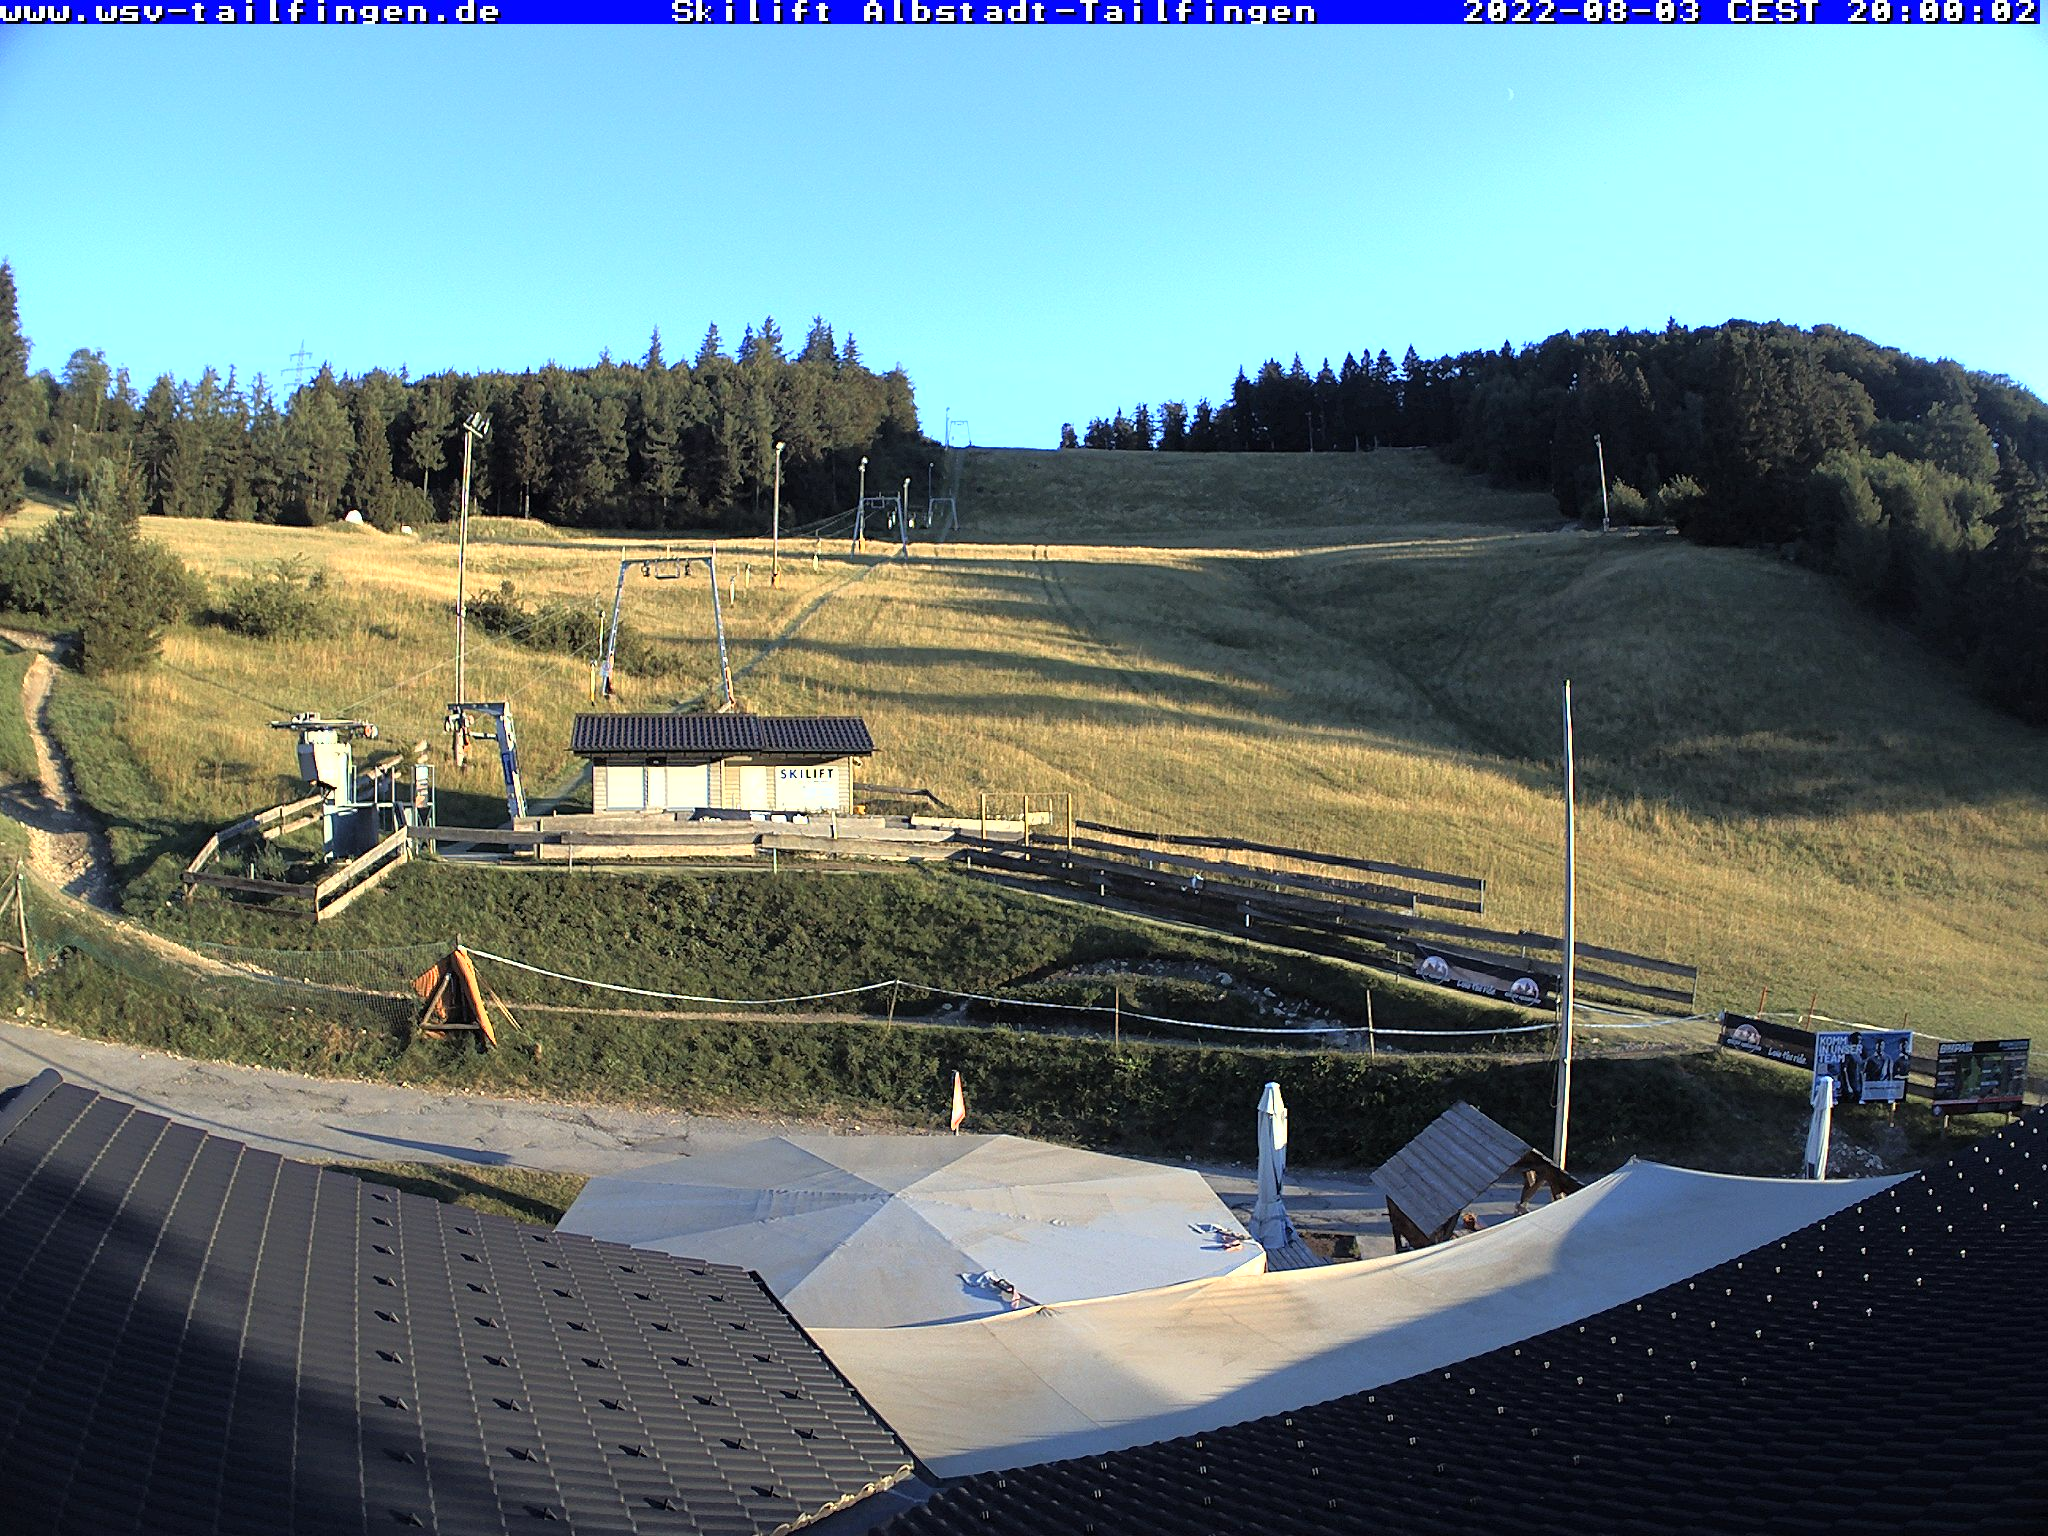 Webcam Ski Resort Albstadt - Tailfingen Swabian Jura